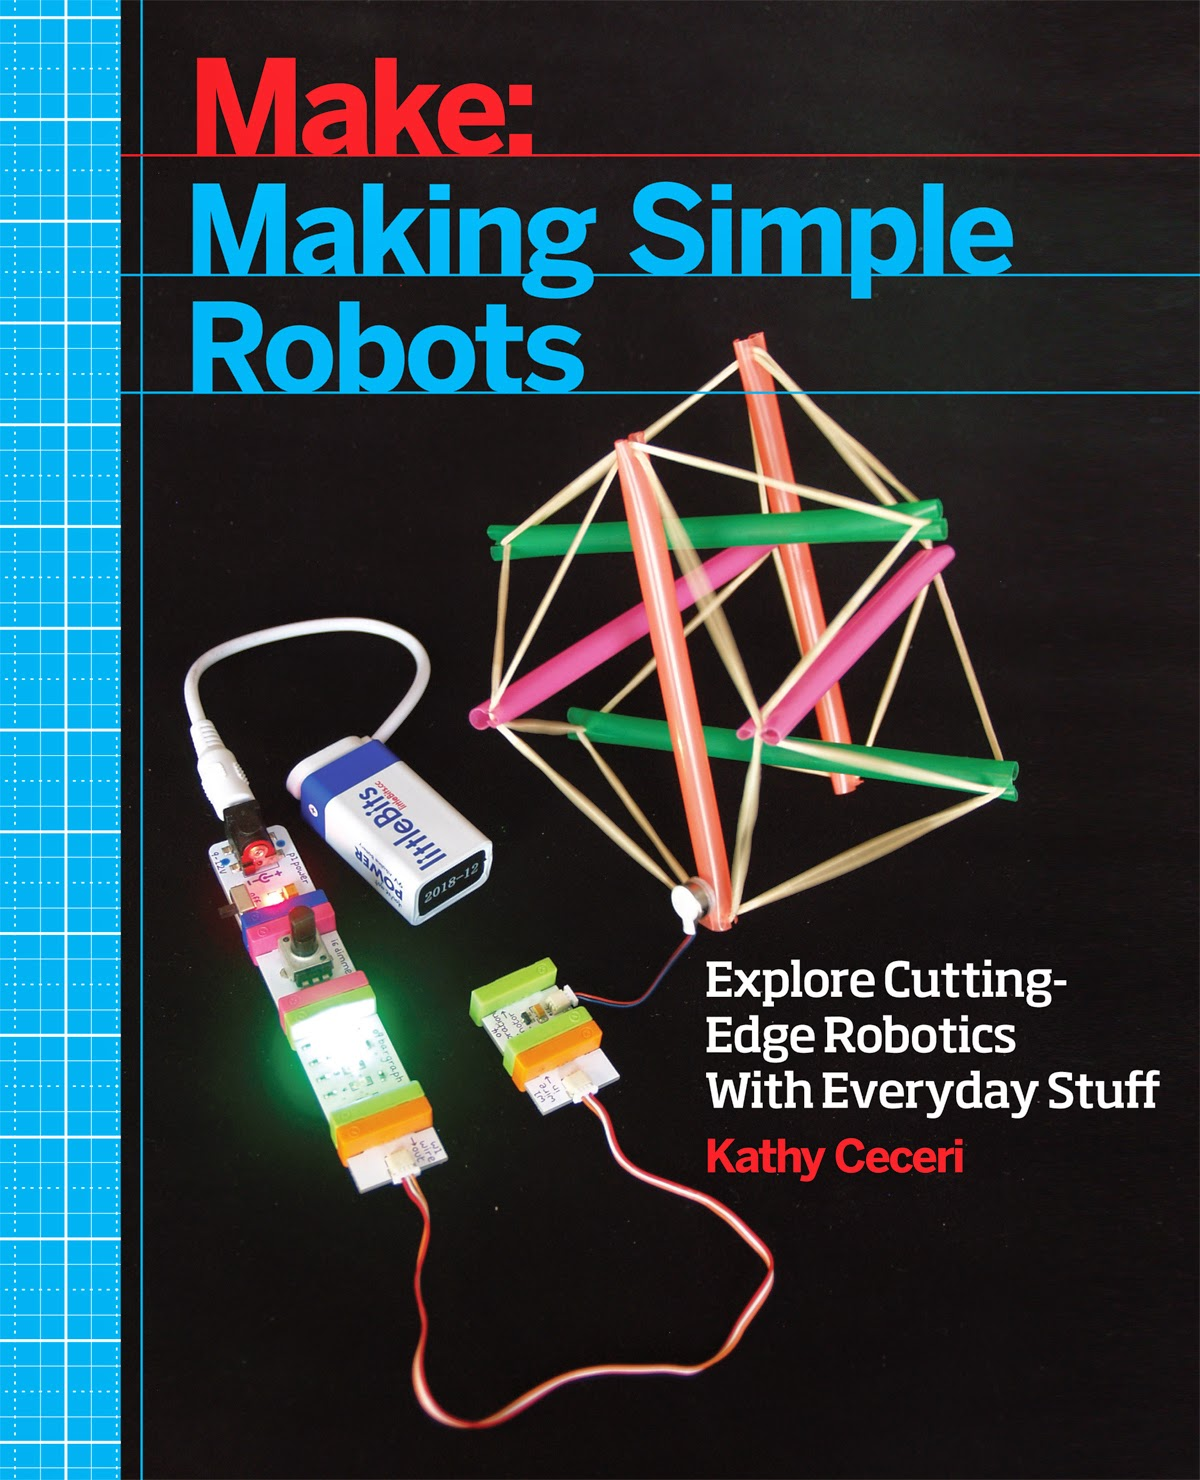 Home Physics: Making Simple Robots! My new book from MAKE magazine